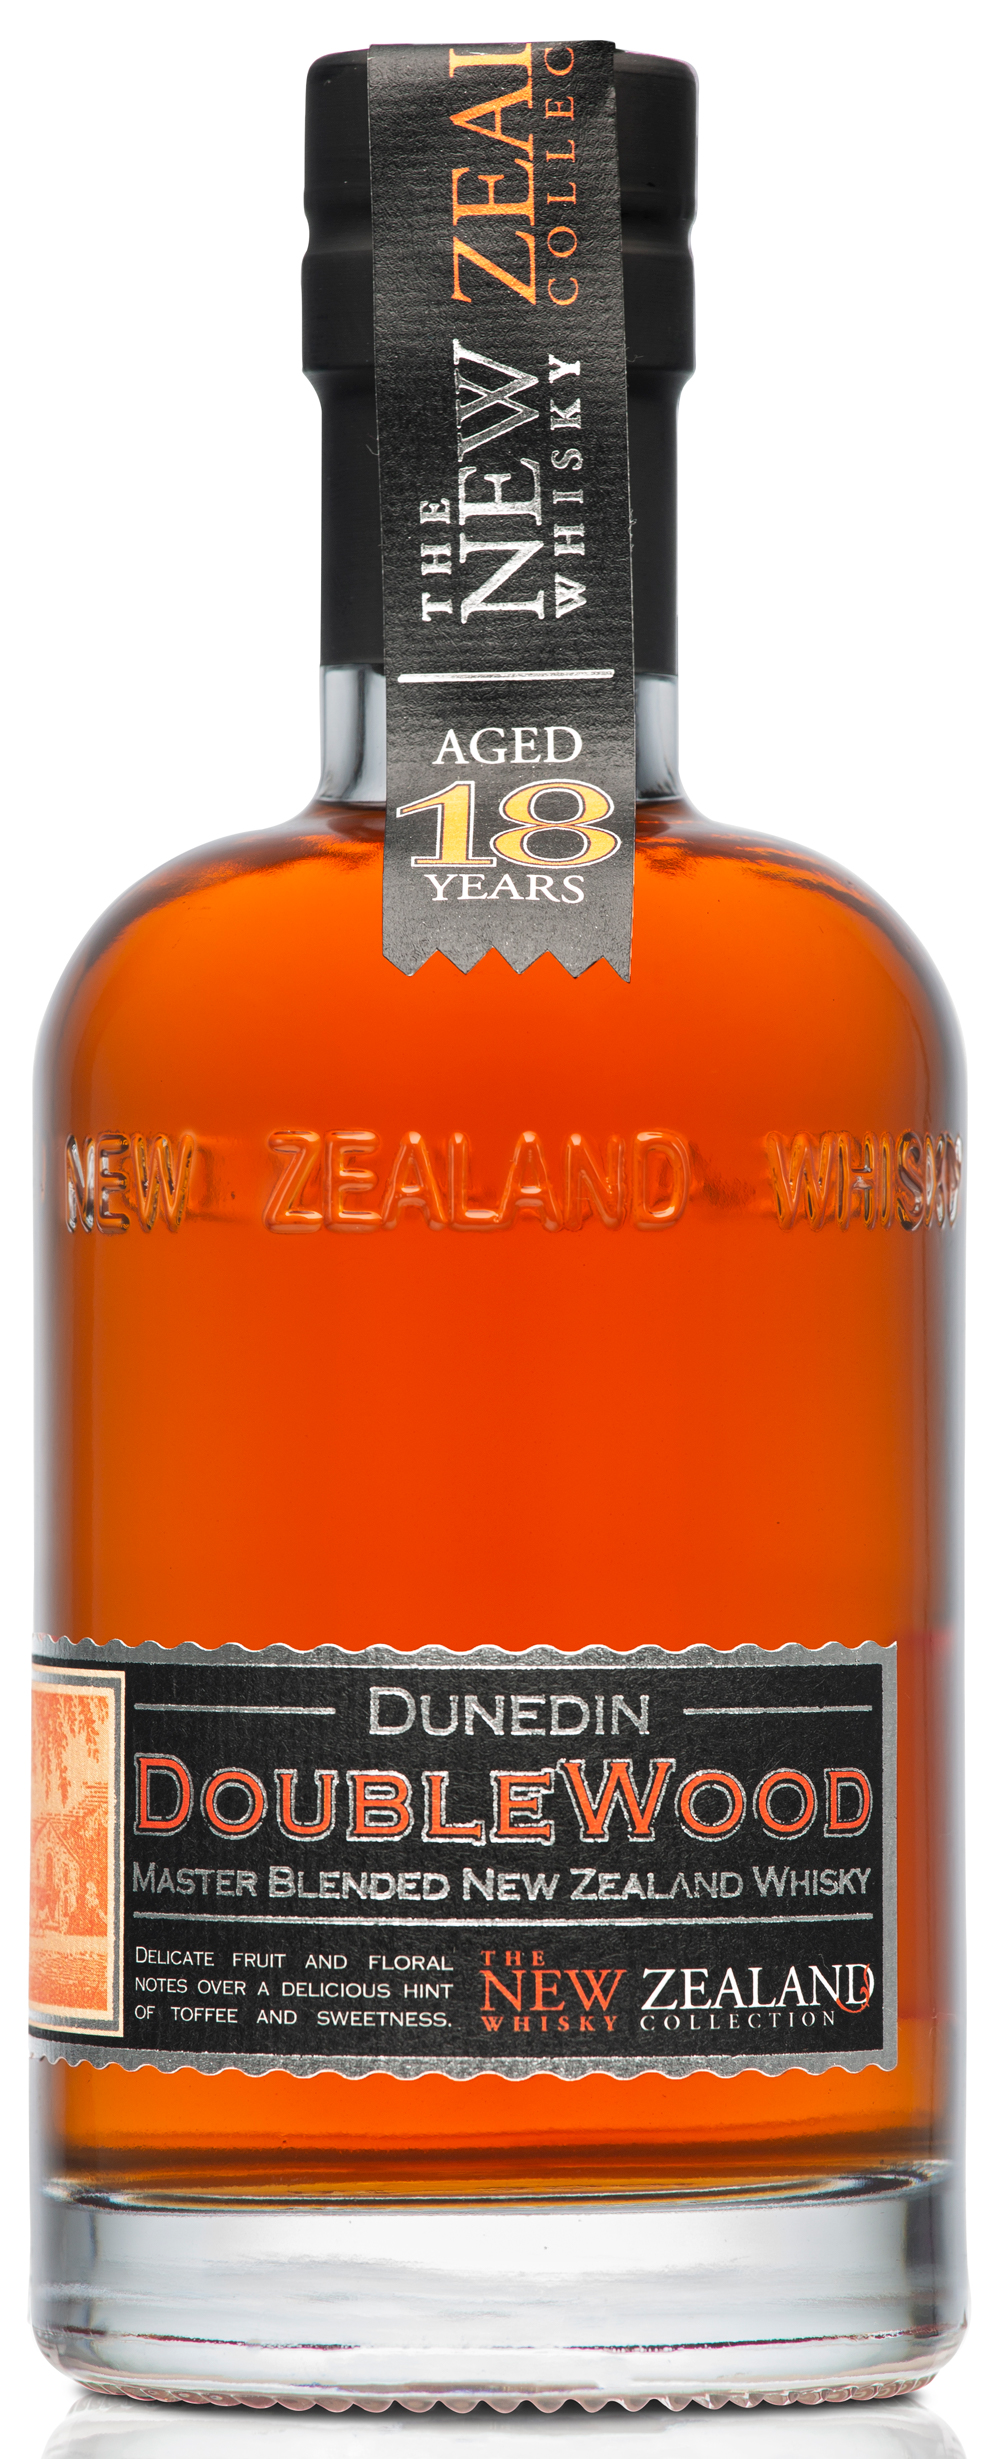 The New Zealand Whisky Collection Dunedin DoubleWood